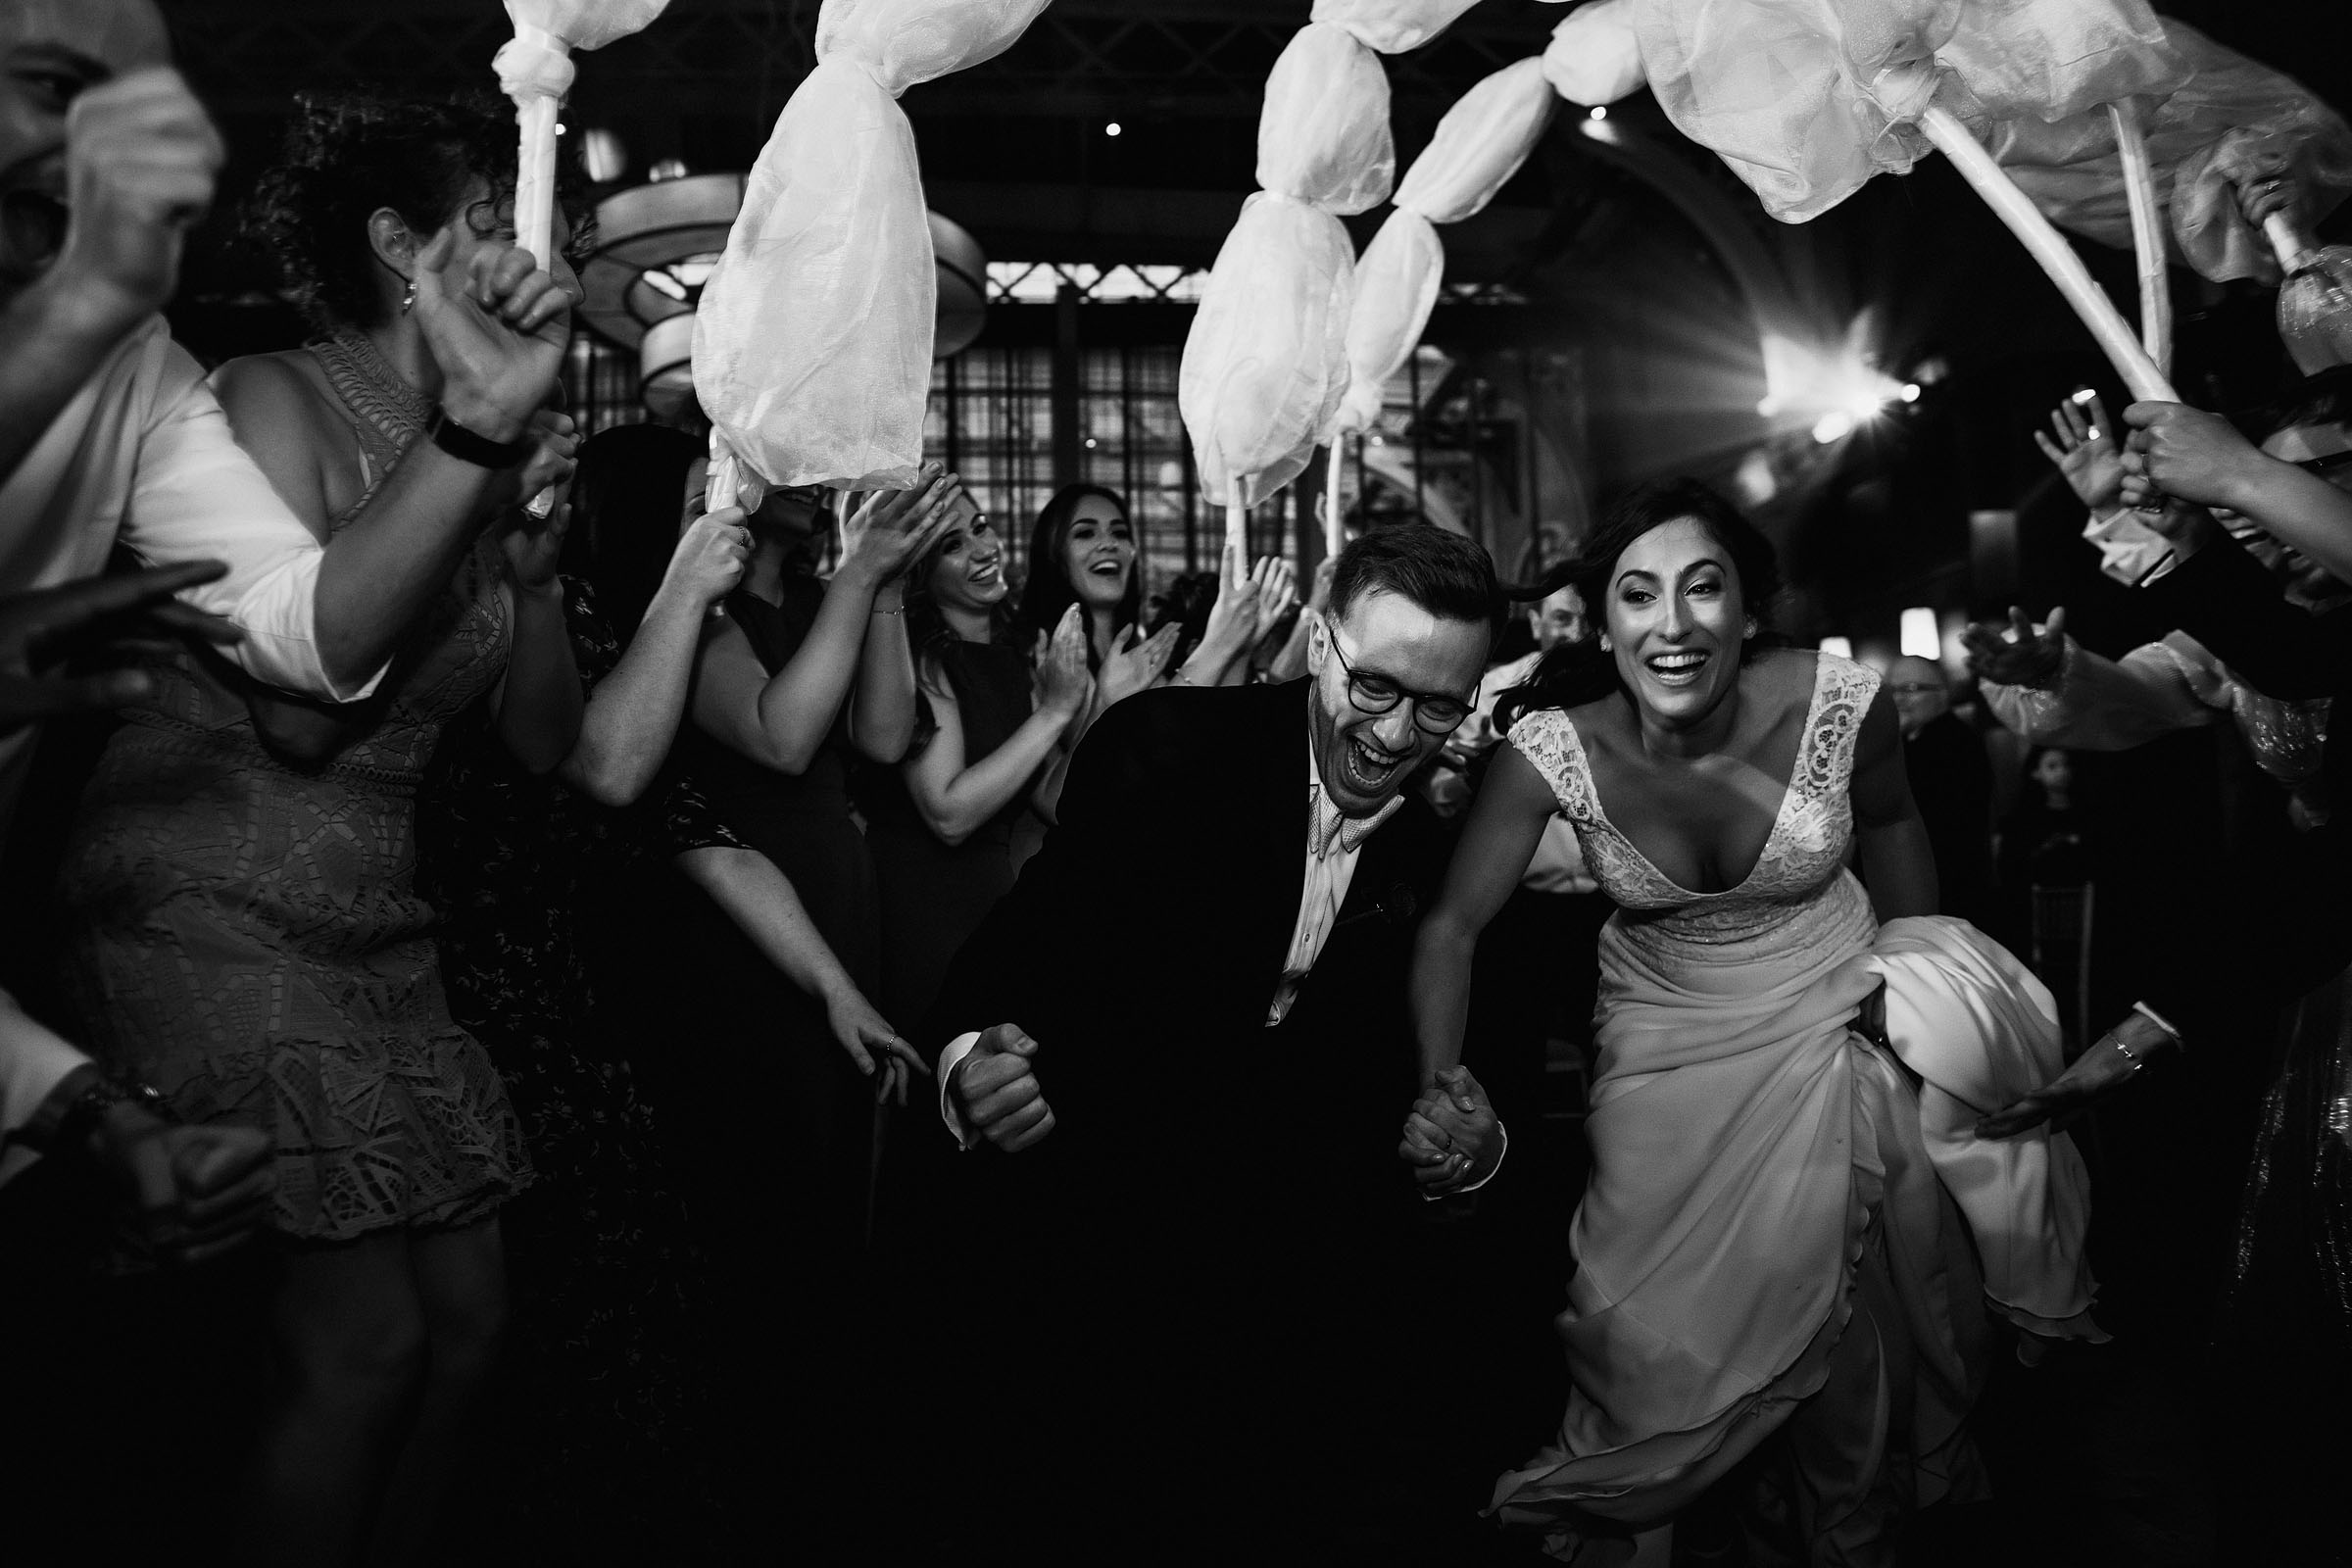 Couple running exit through guests - Photo by F5 Photography